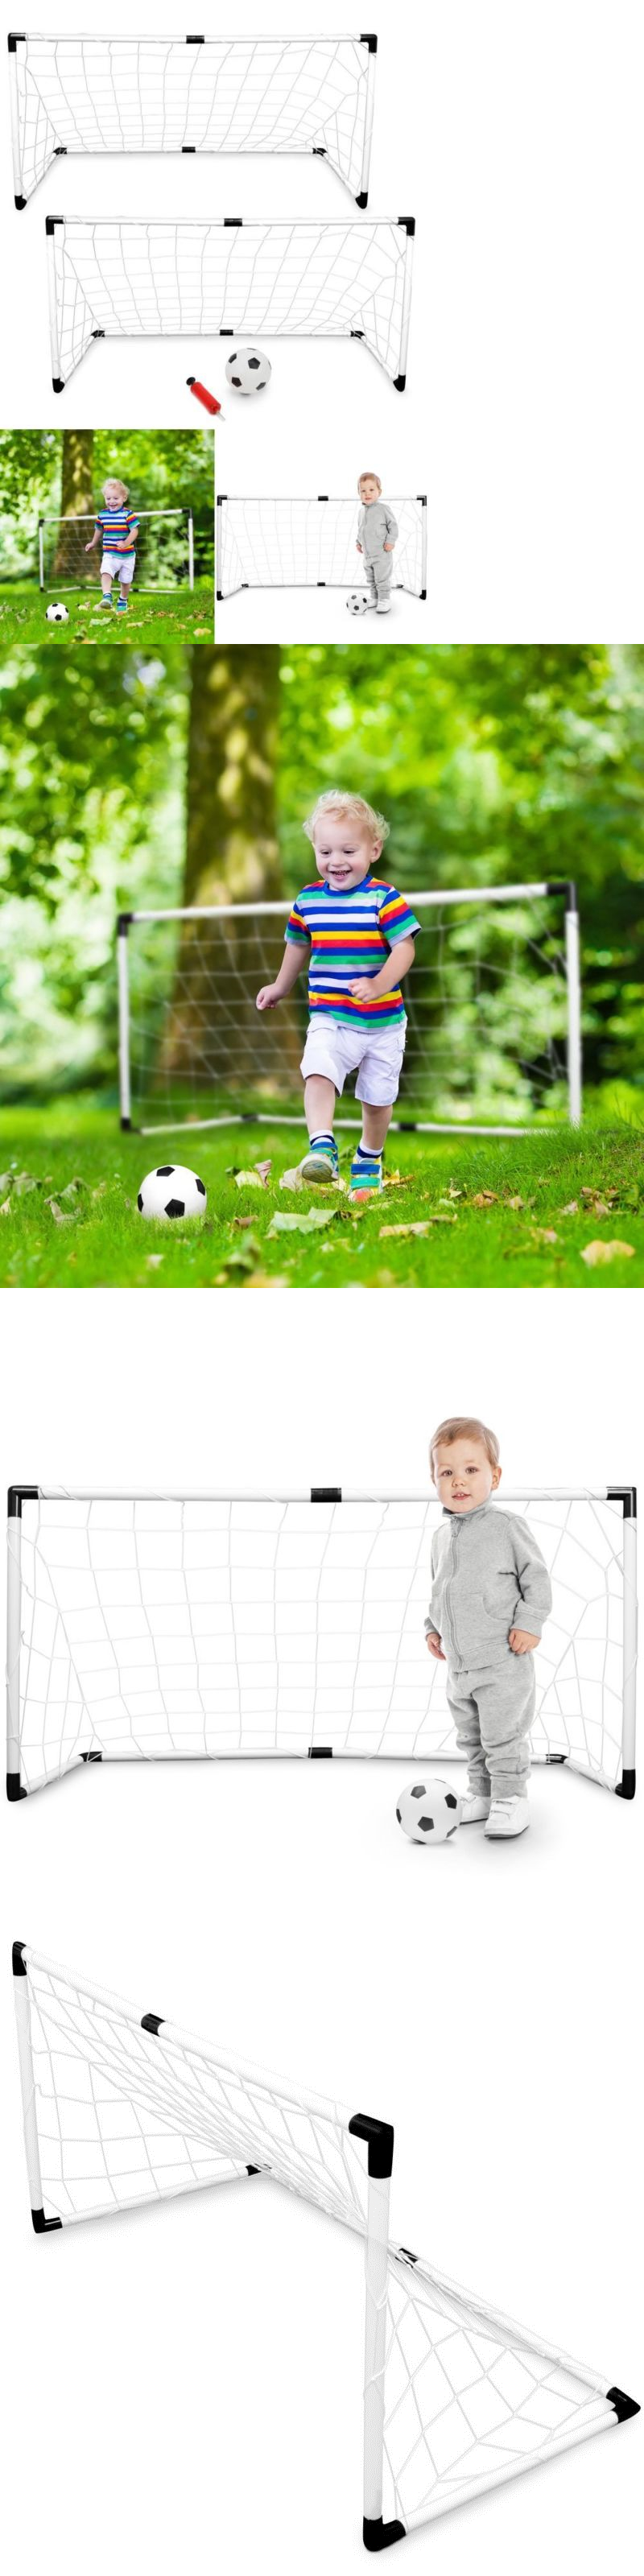 goals and nets 159180 set of 2 soccer goal for backyard toddlers